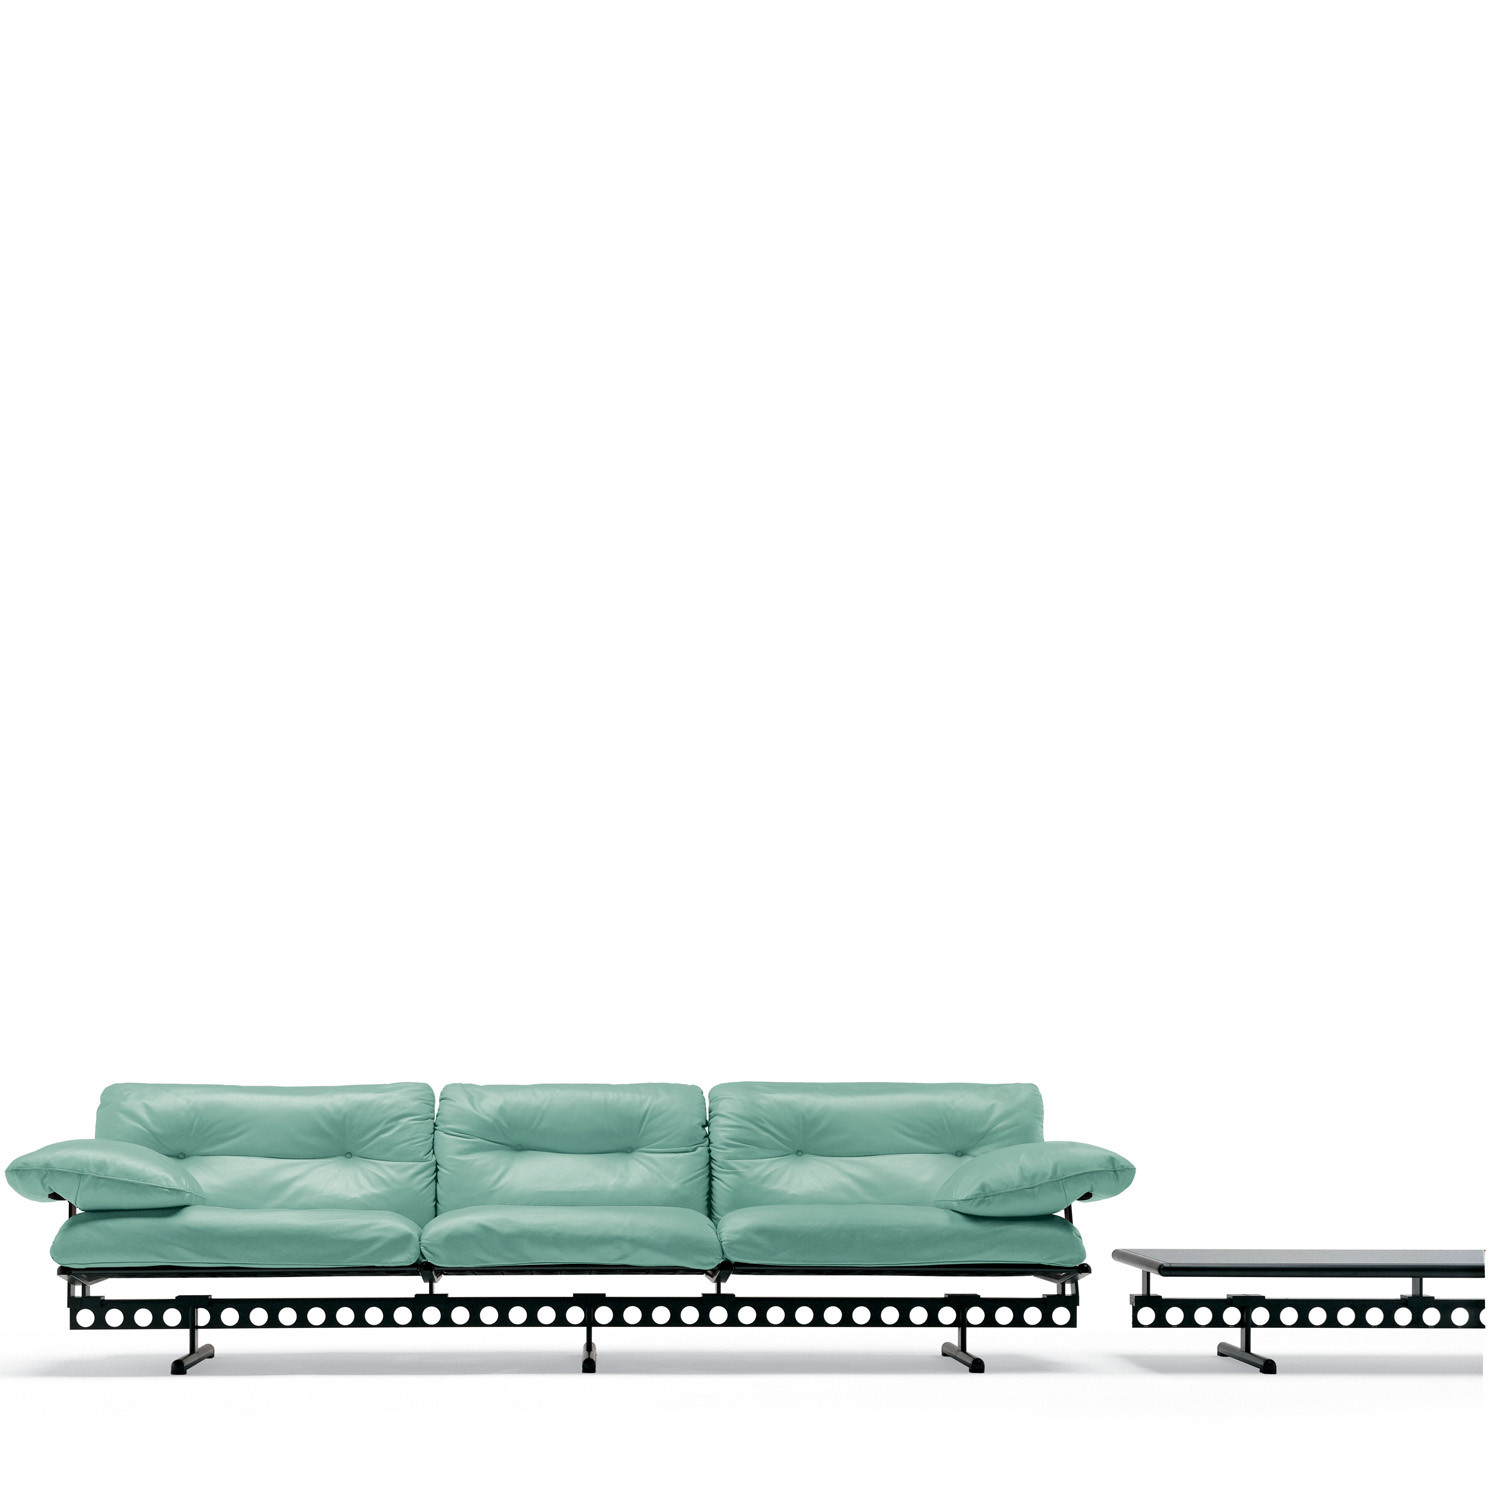 Ouverture Sofa from Pierluigio Cerri